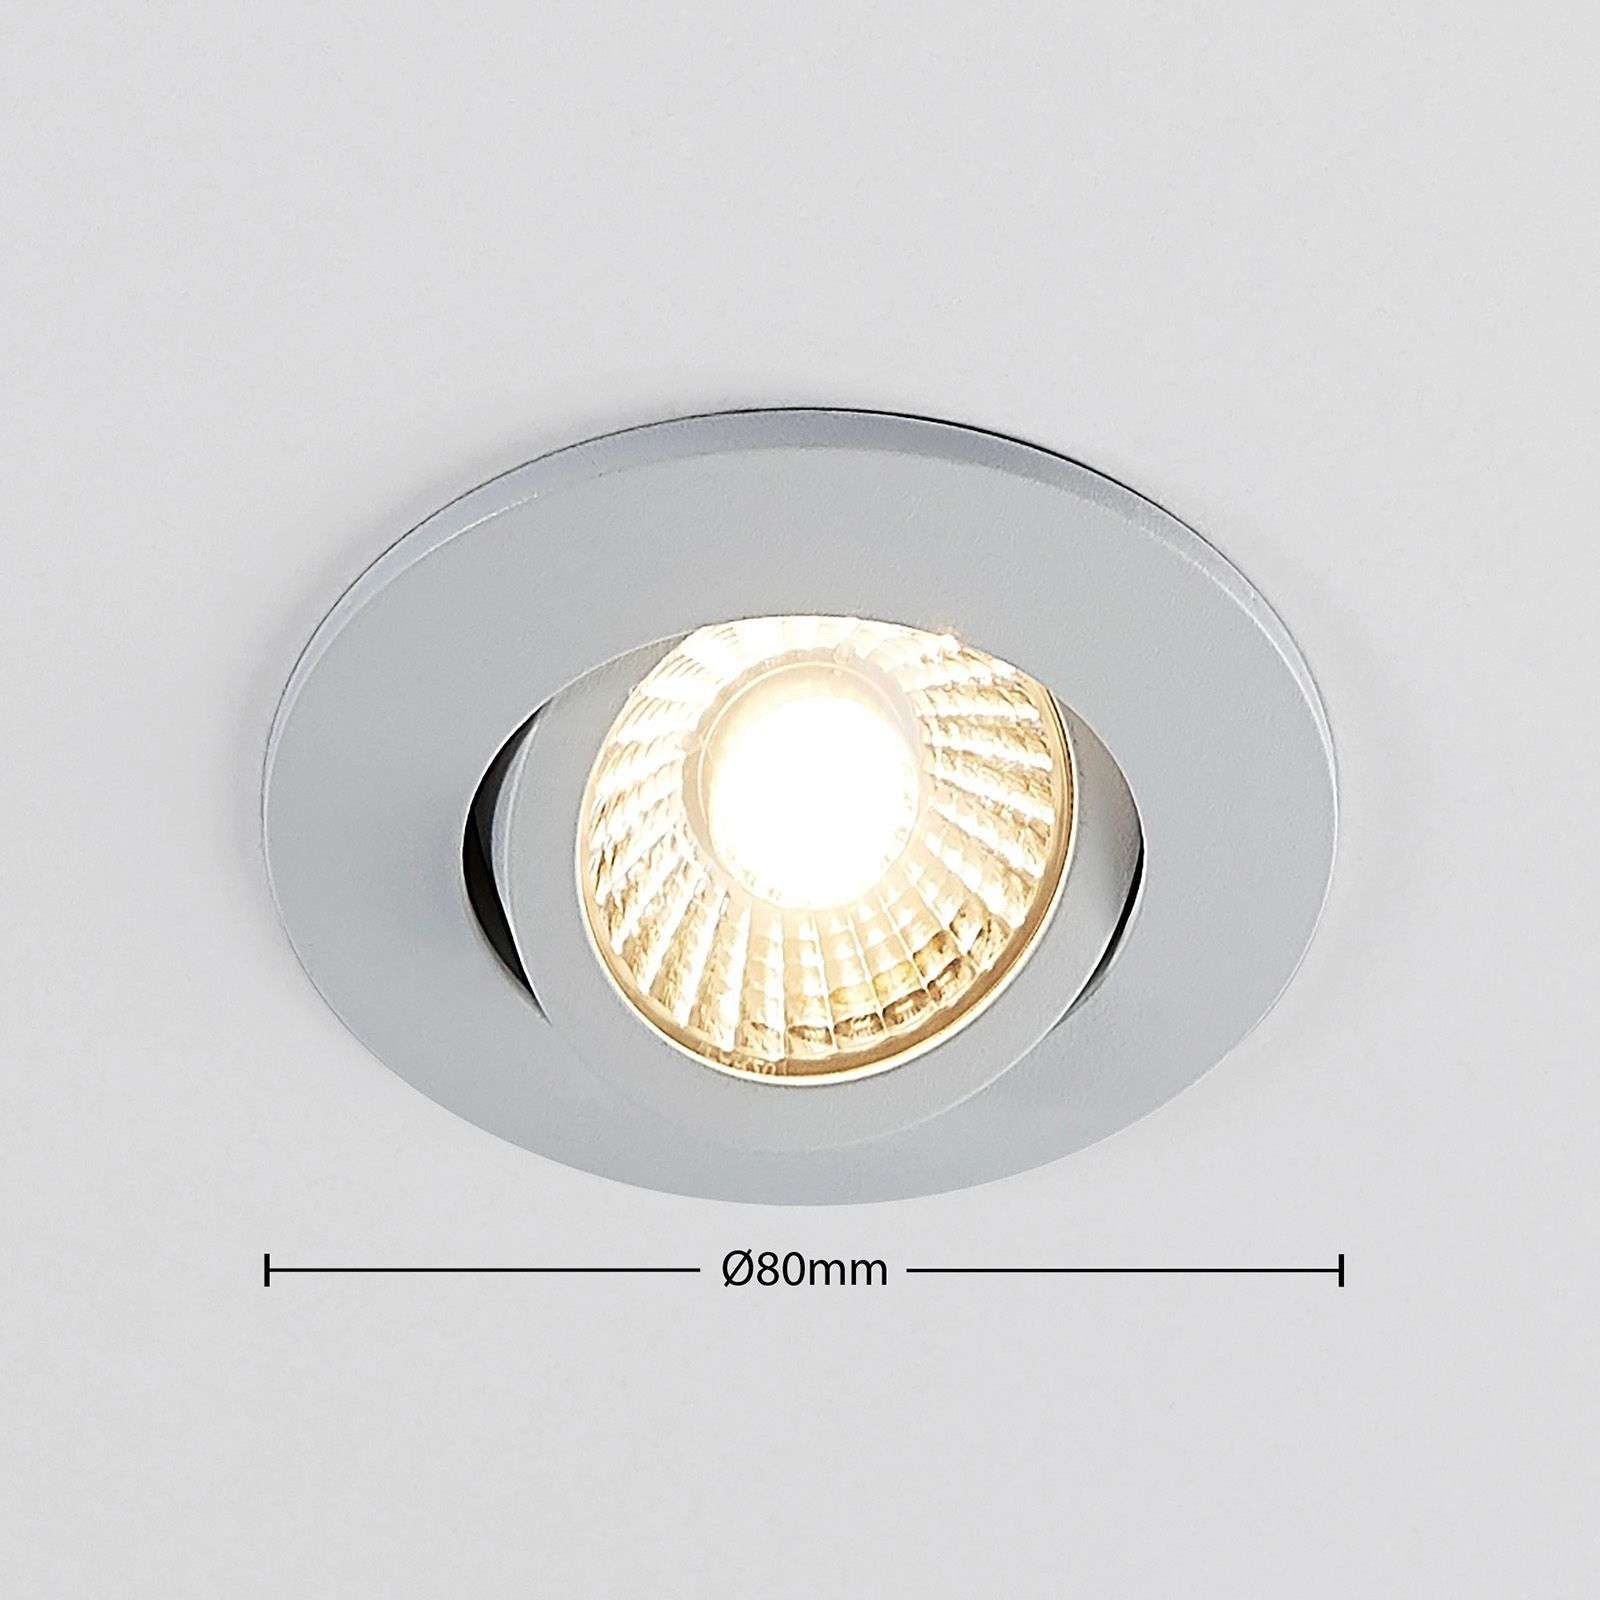 Arcchio Ricals Downlight Led Dimmable In 2020 Led Led Technik Led Spots